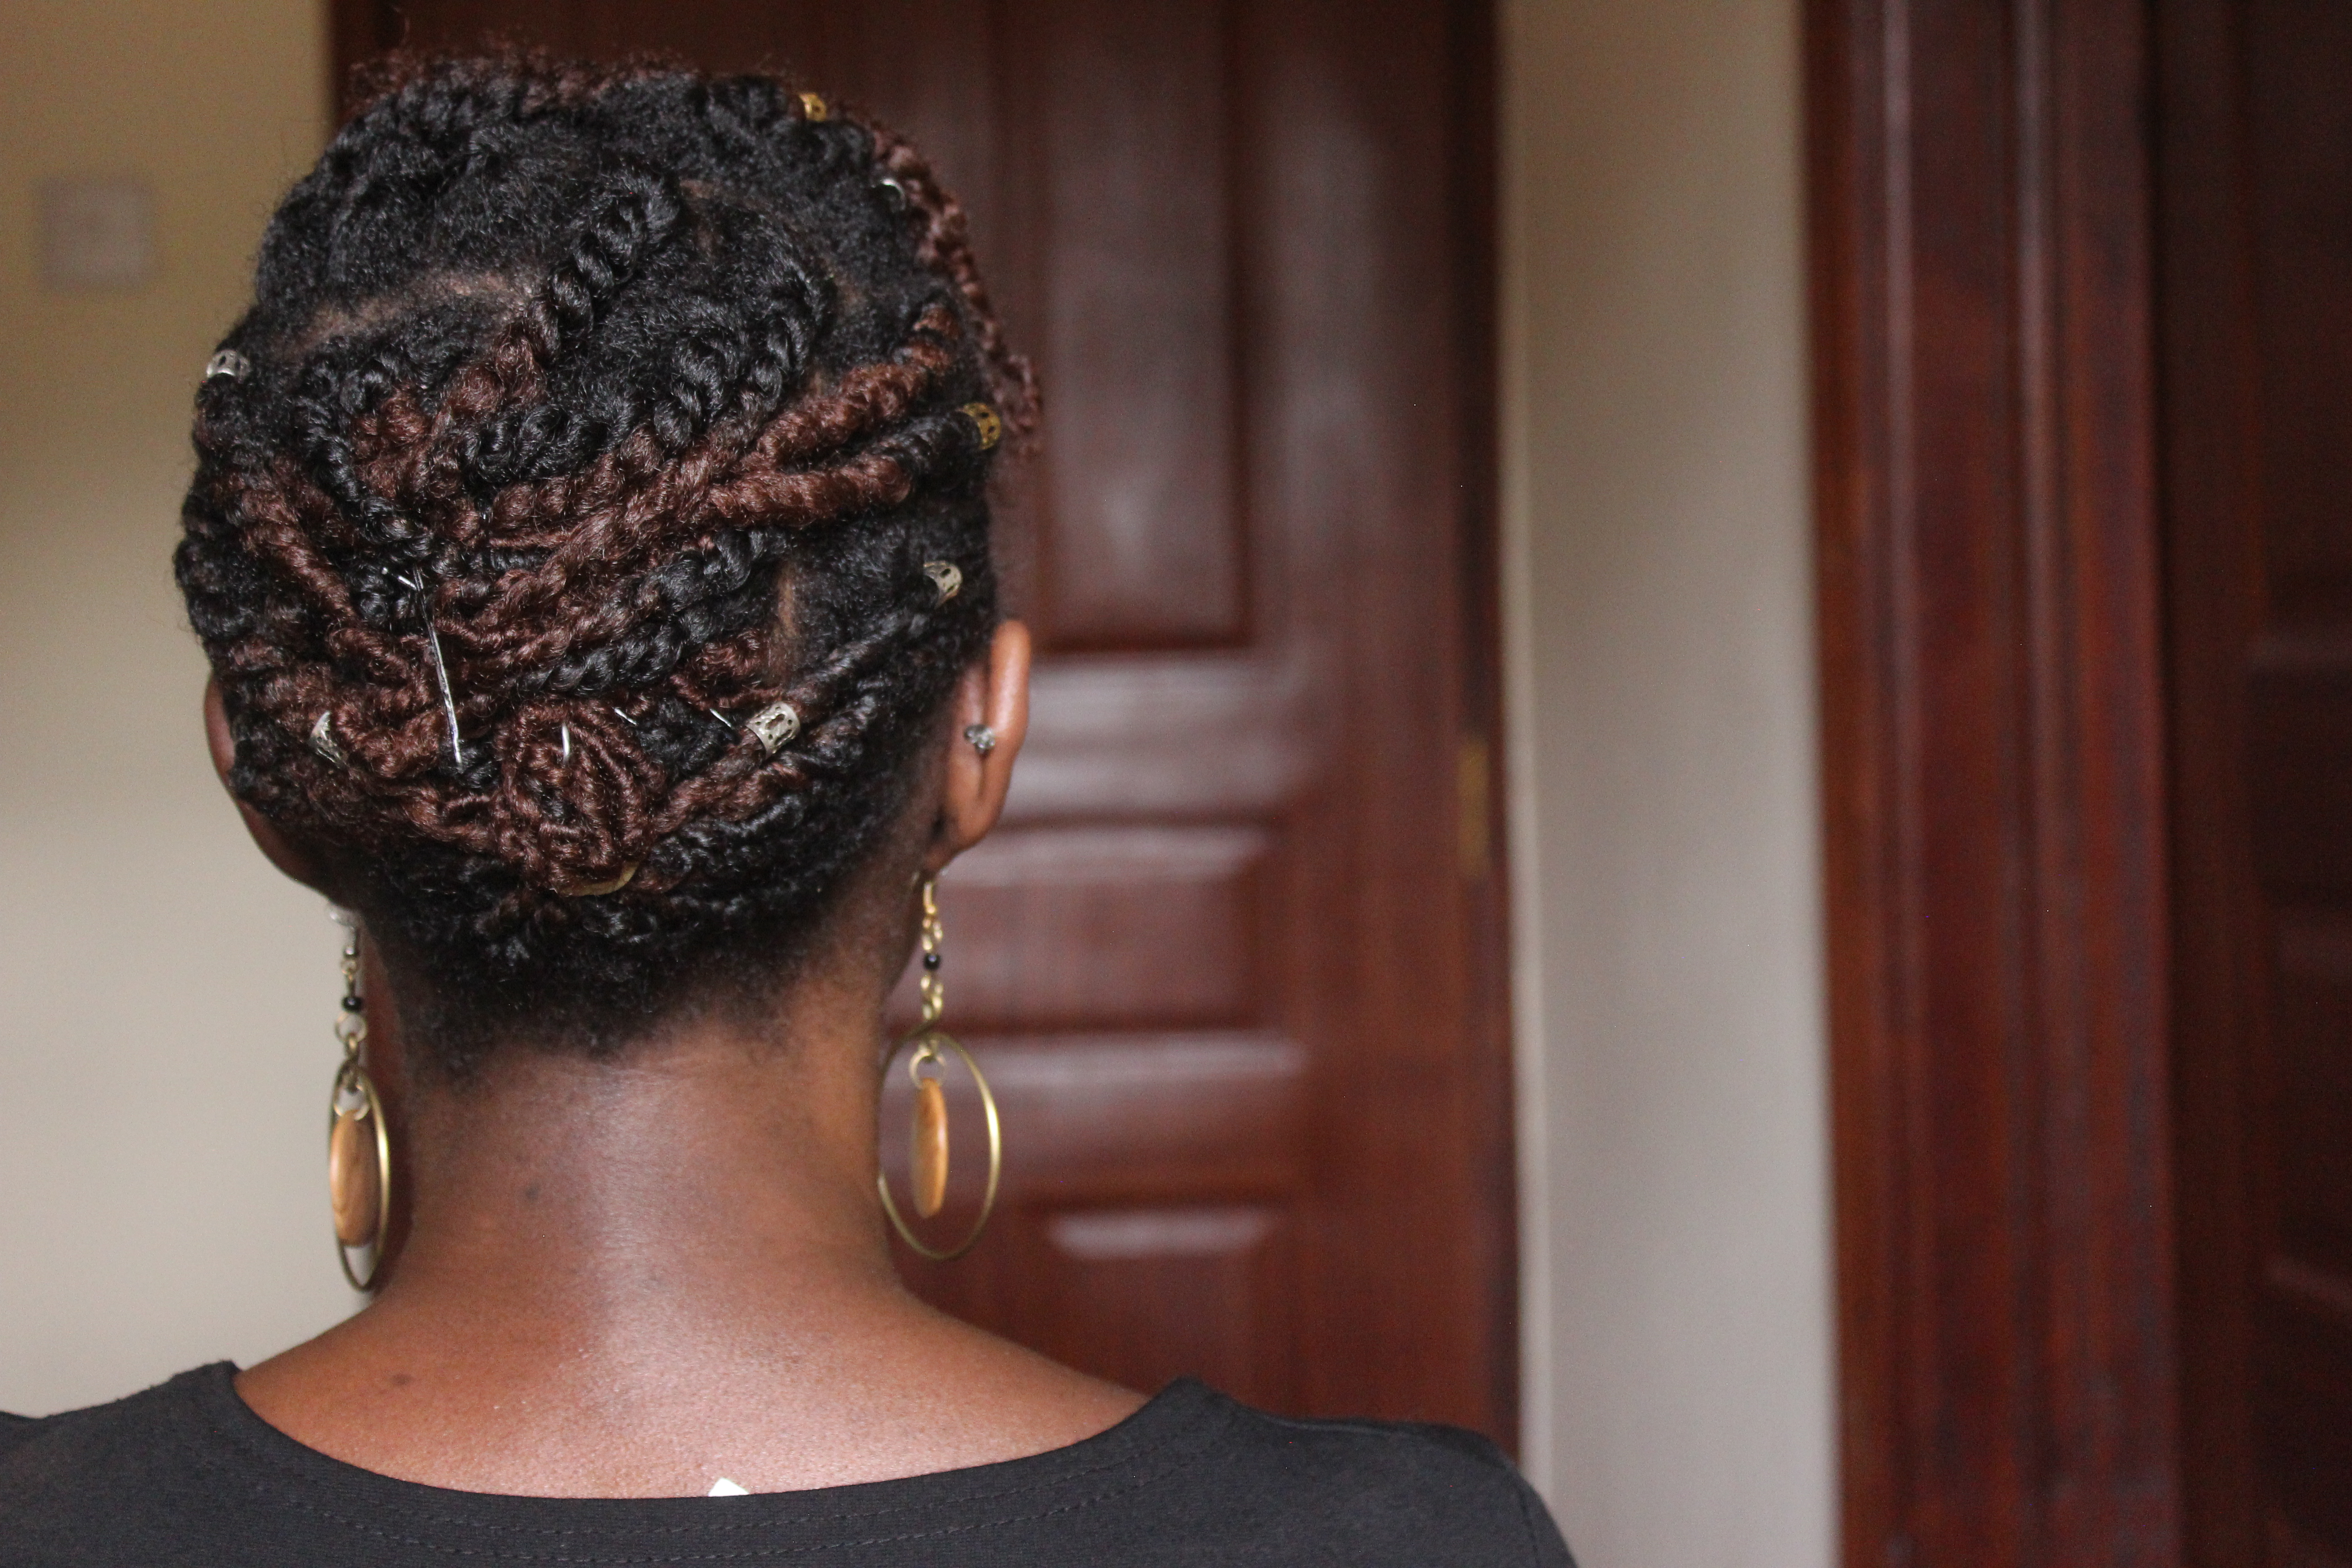 Flat Twists and Two Strand Twists on Type 4 Natural HairFlat Twists and Two Strand Twists on Type 4 Natural Hair